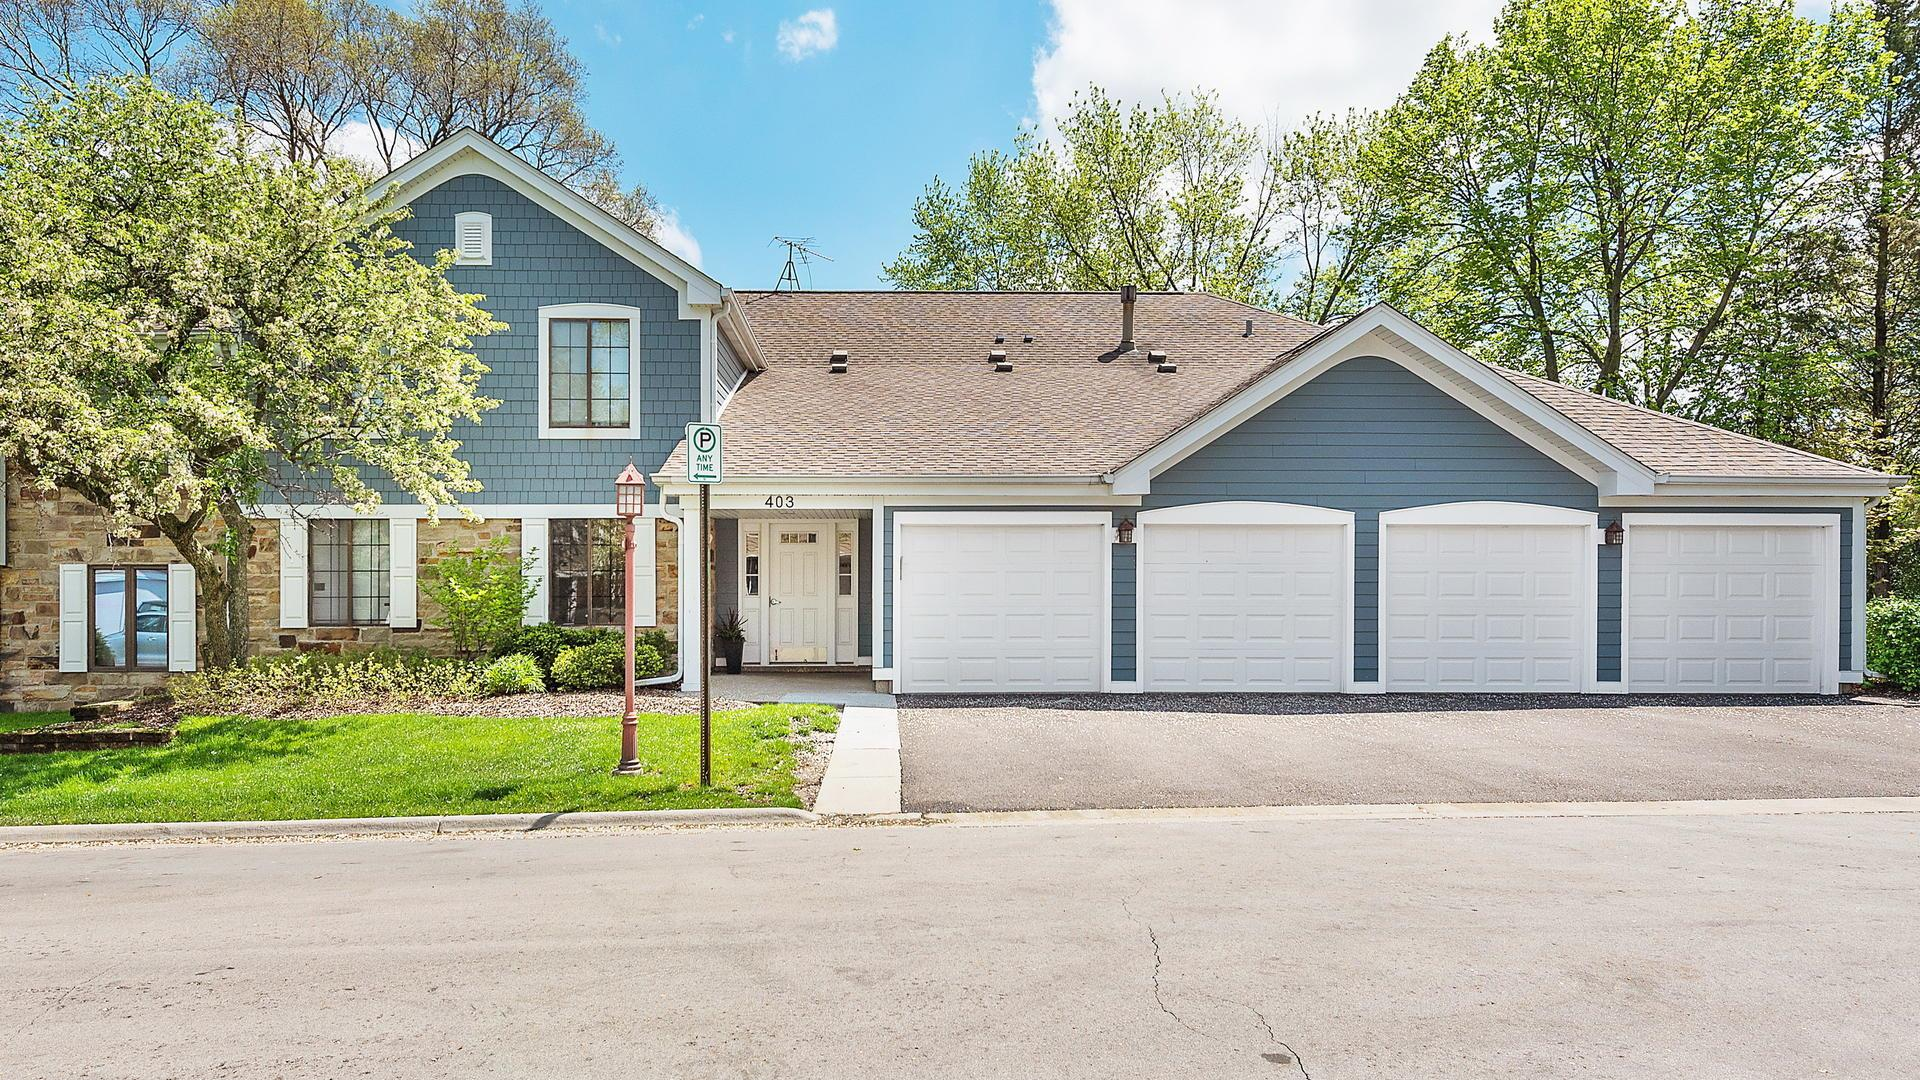 403 sandalwood Lane #D1, Schaumburg, IL 60193 - #: 10721505